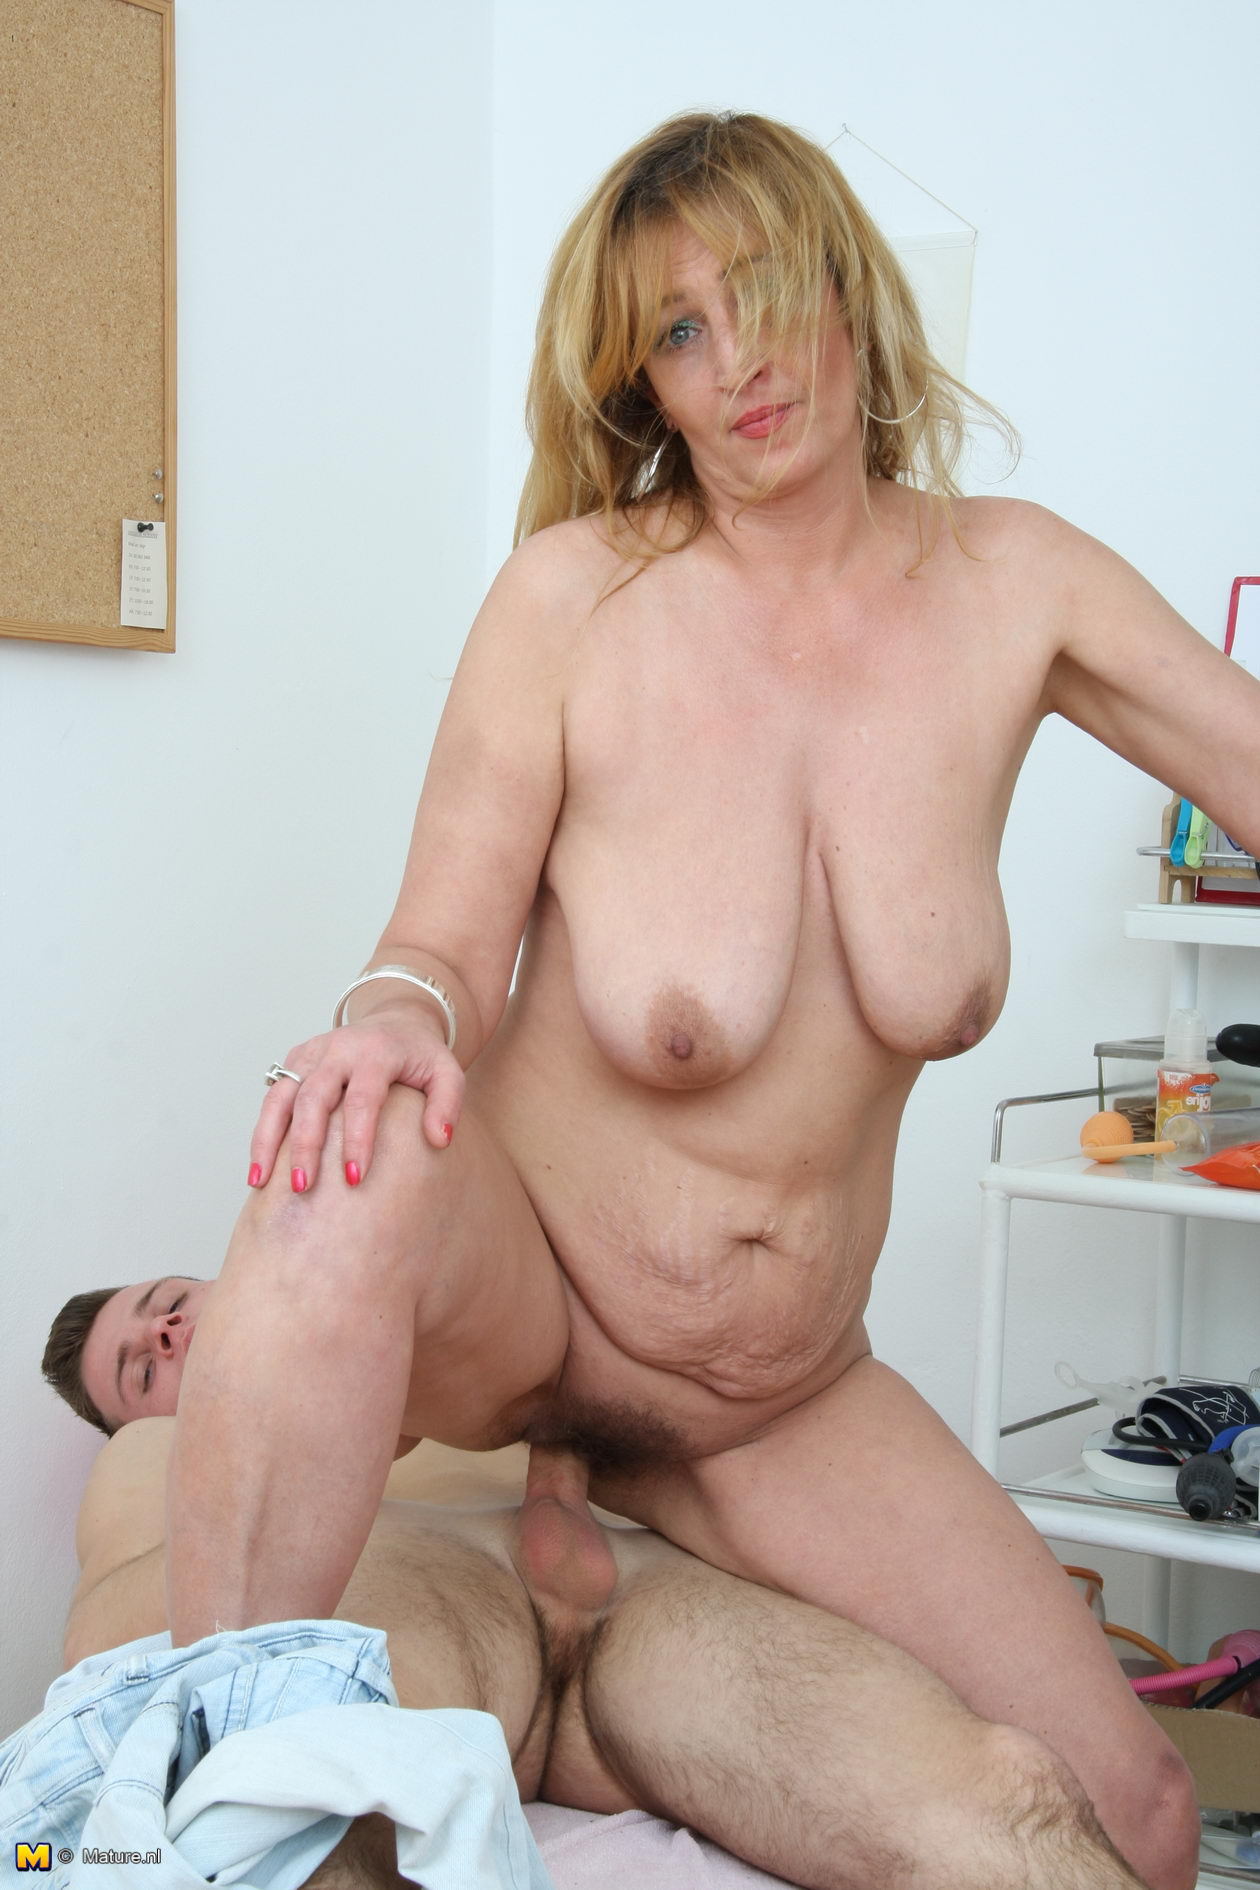 mature - category. - guaranteed hookup!